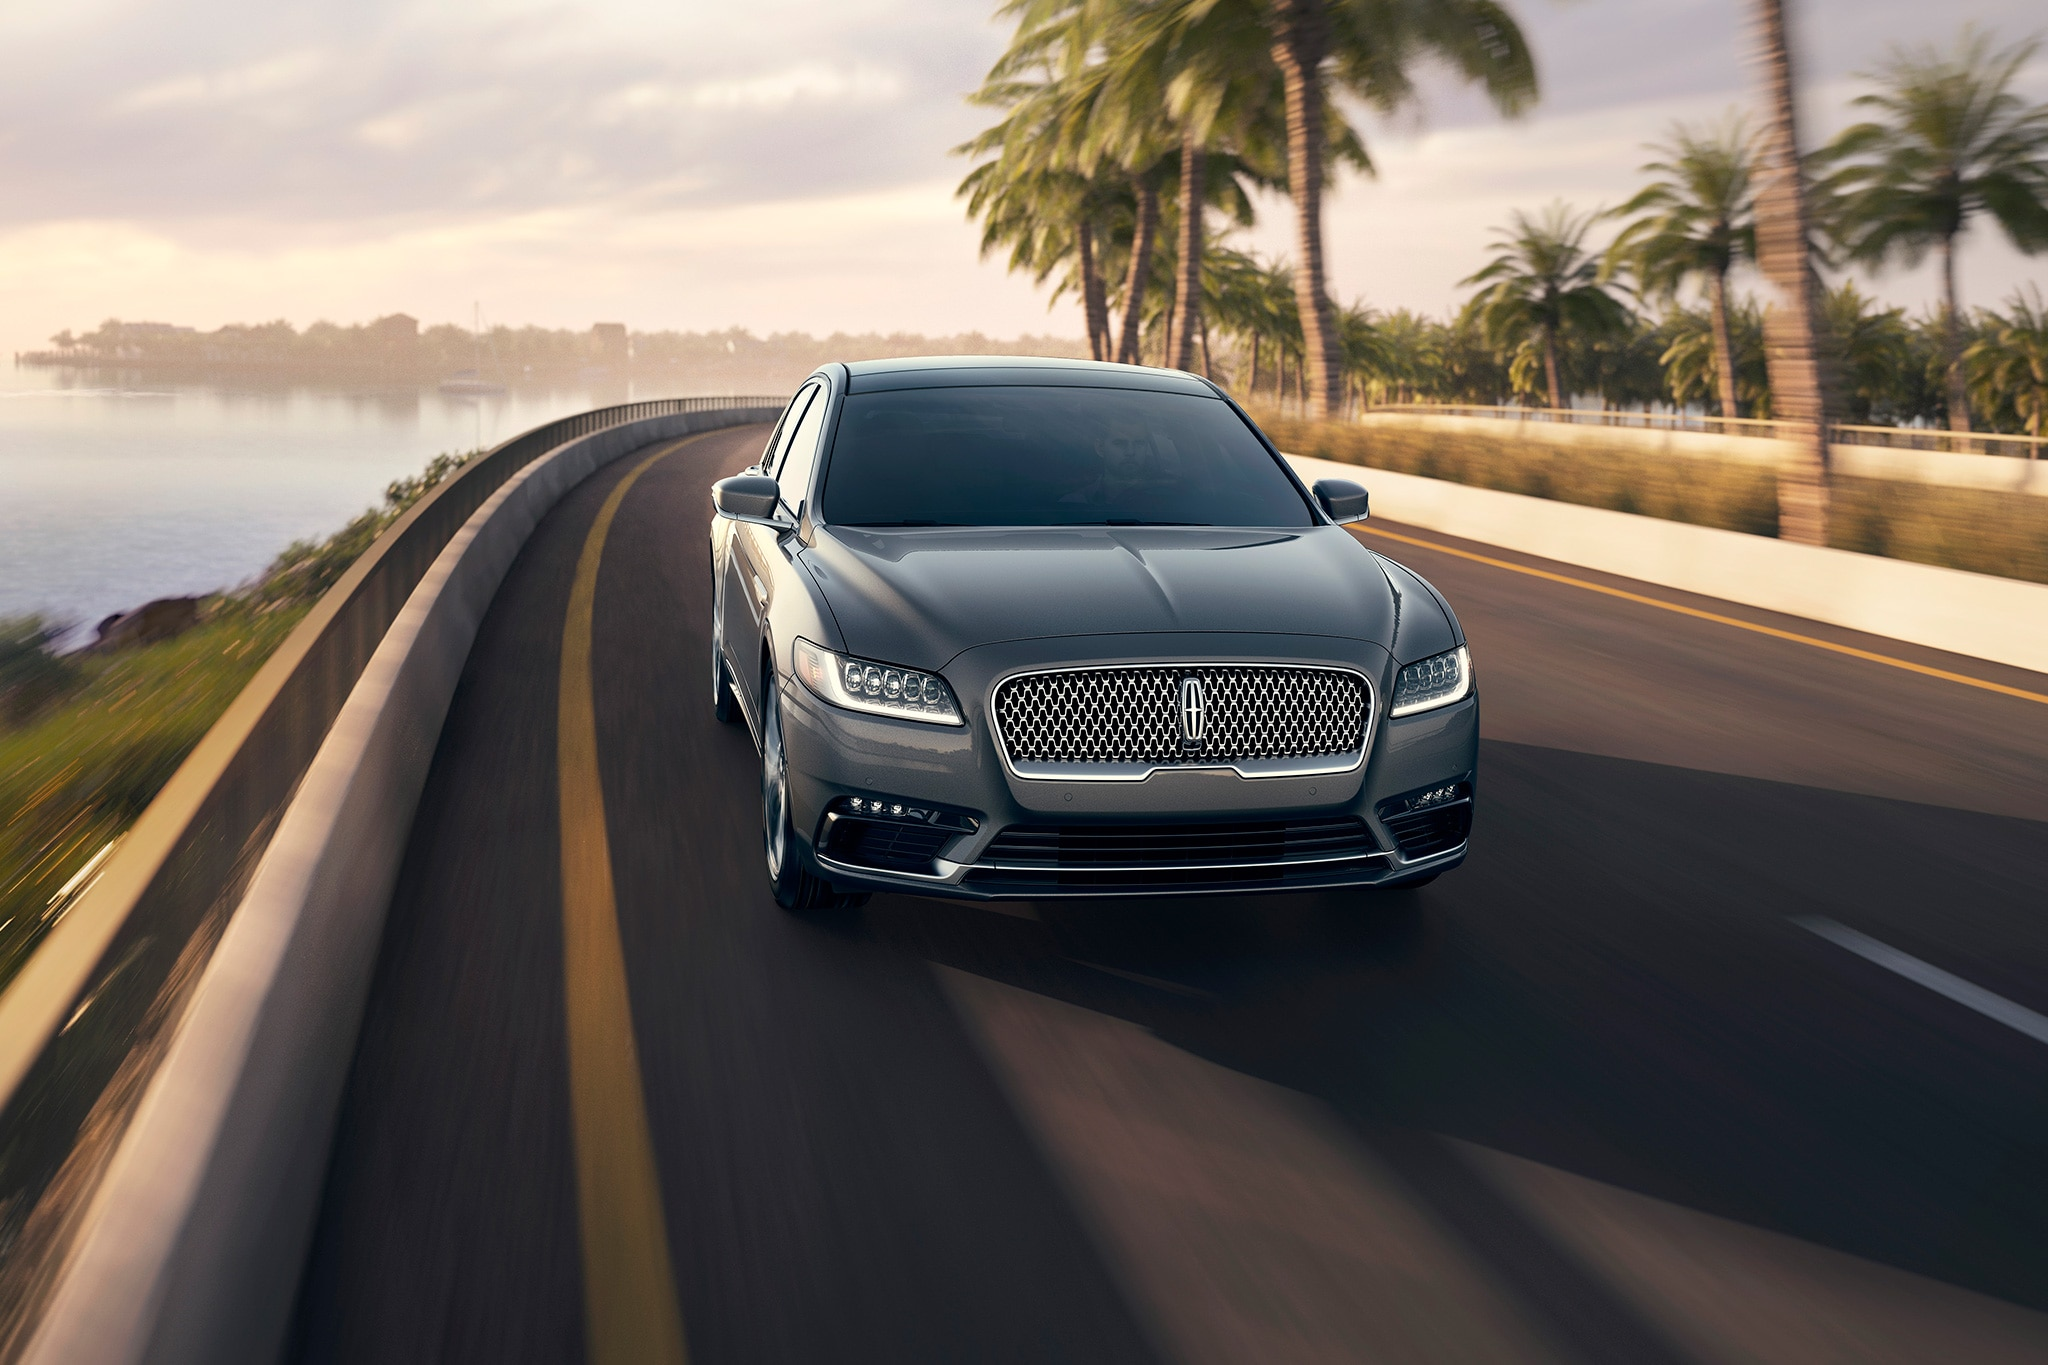 2017 Lincoln Continental Front View In Motion